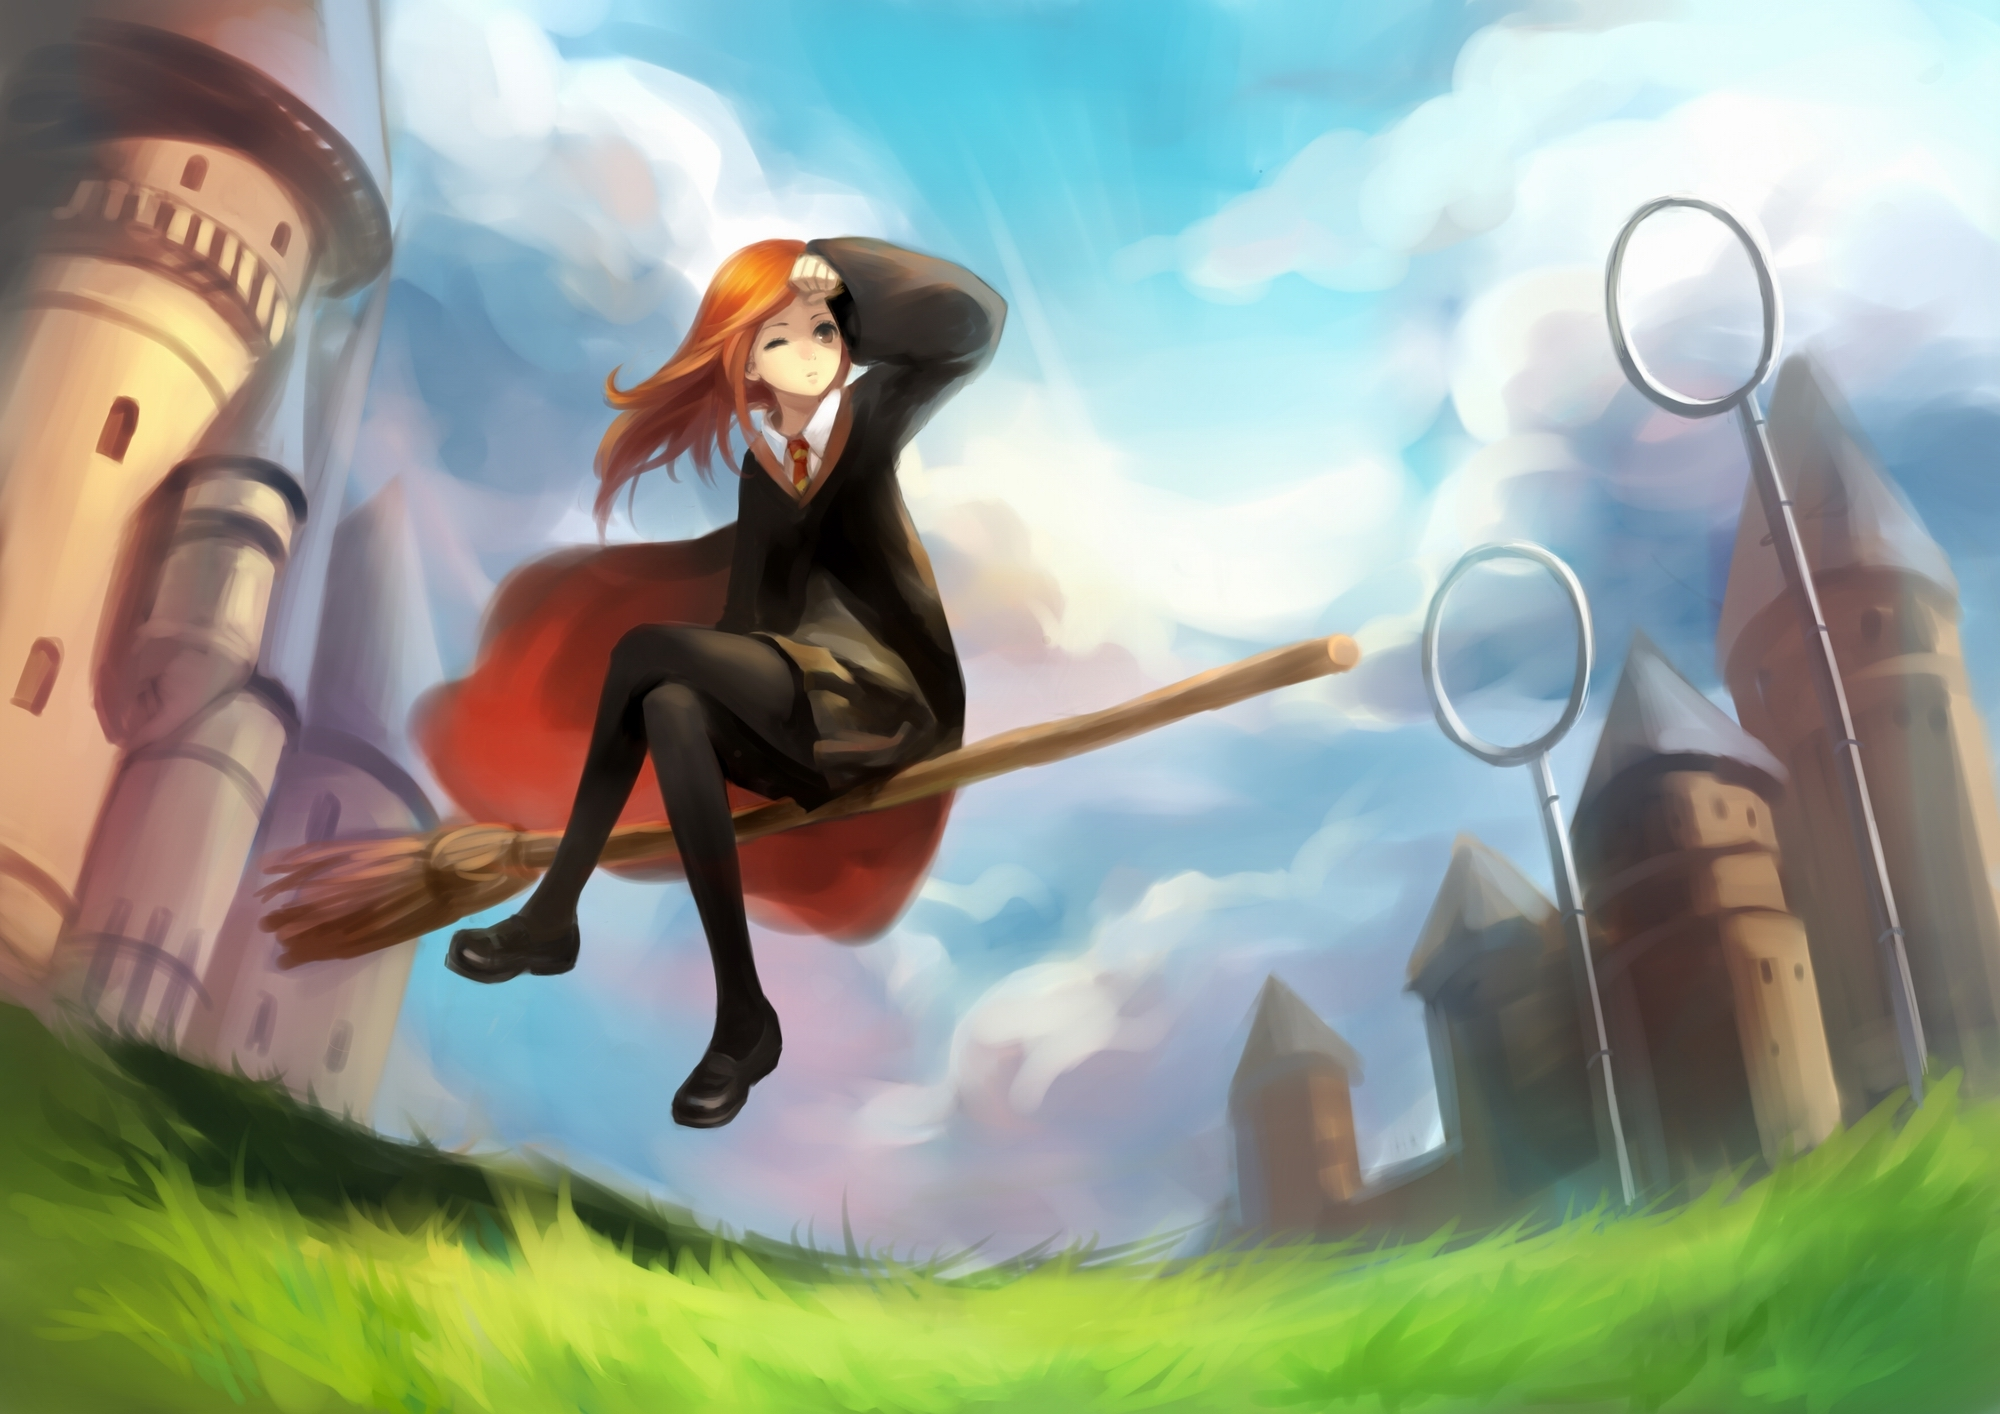 Quidditch - Harry Potter | page 2 of 4 - Zerochan Anime Image Board